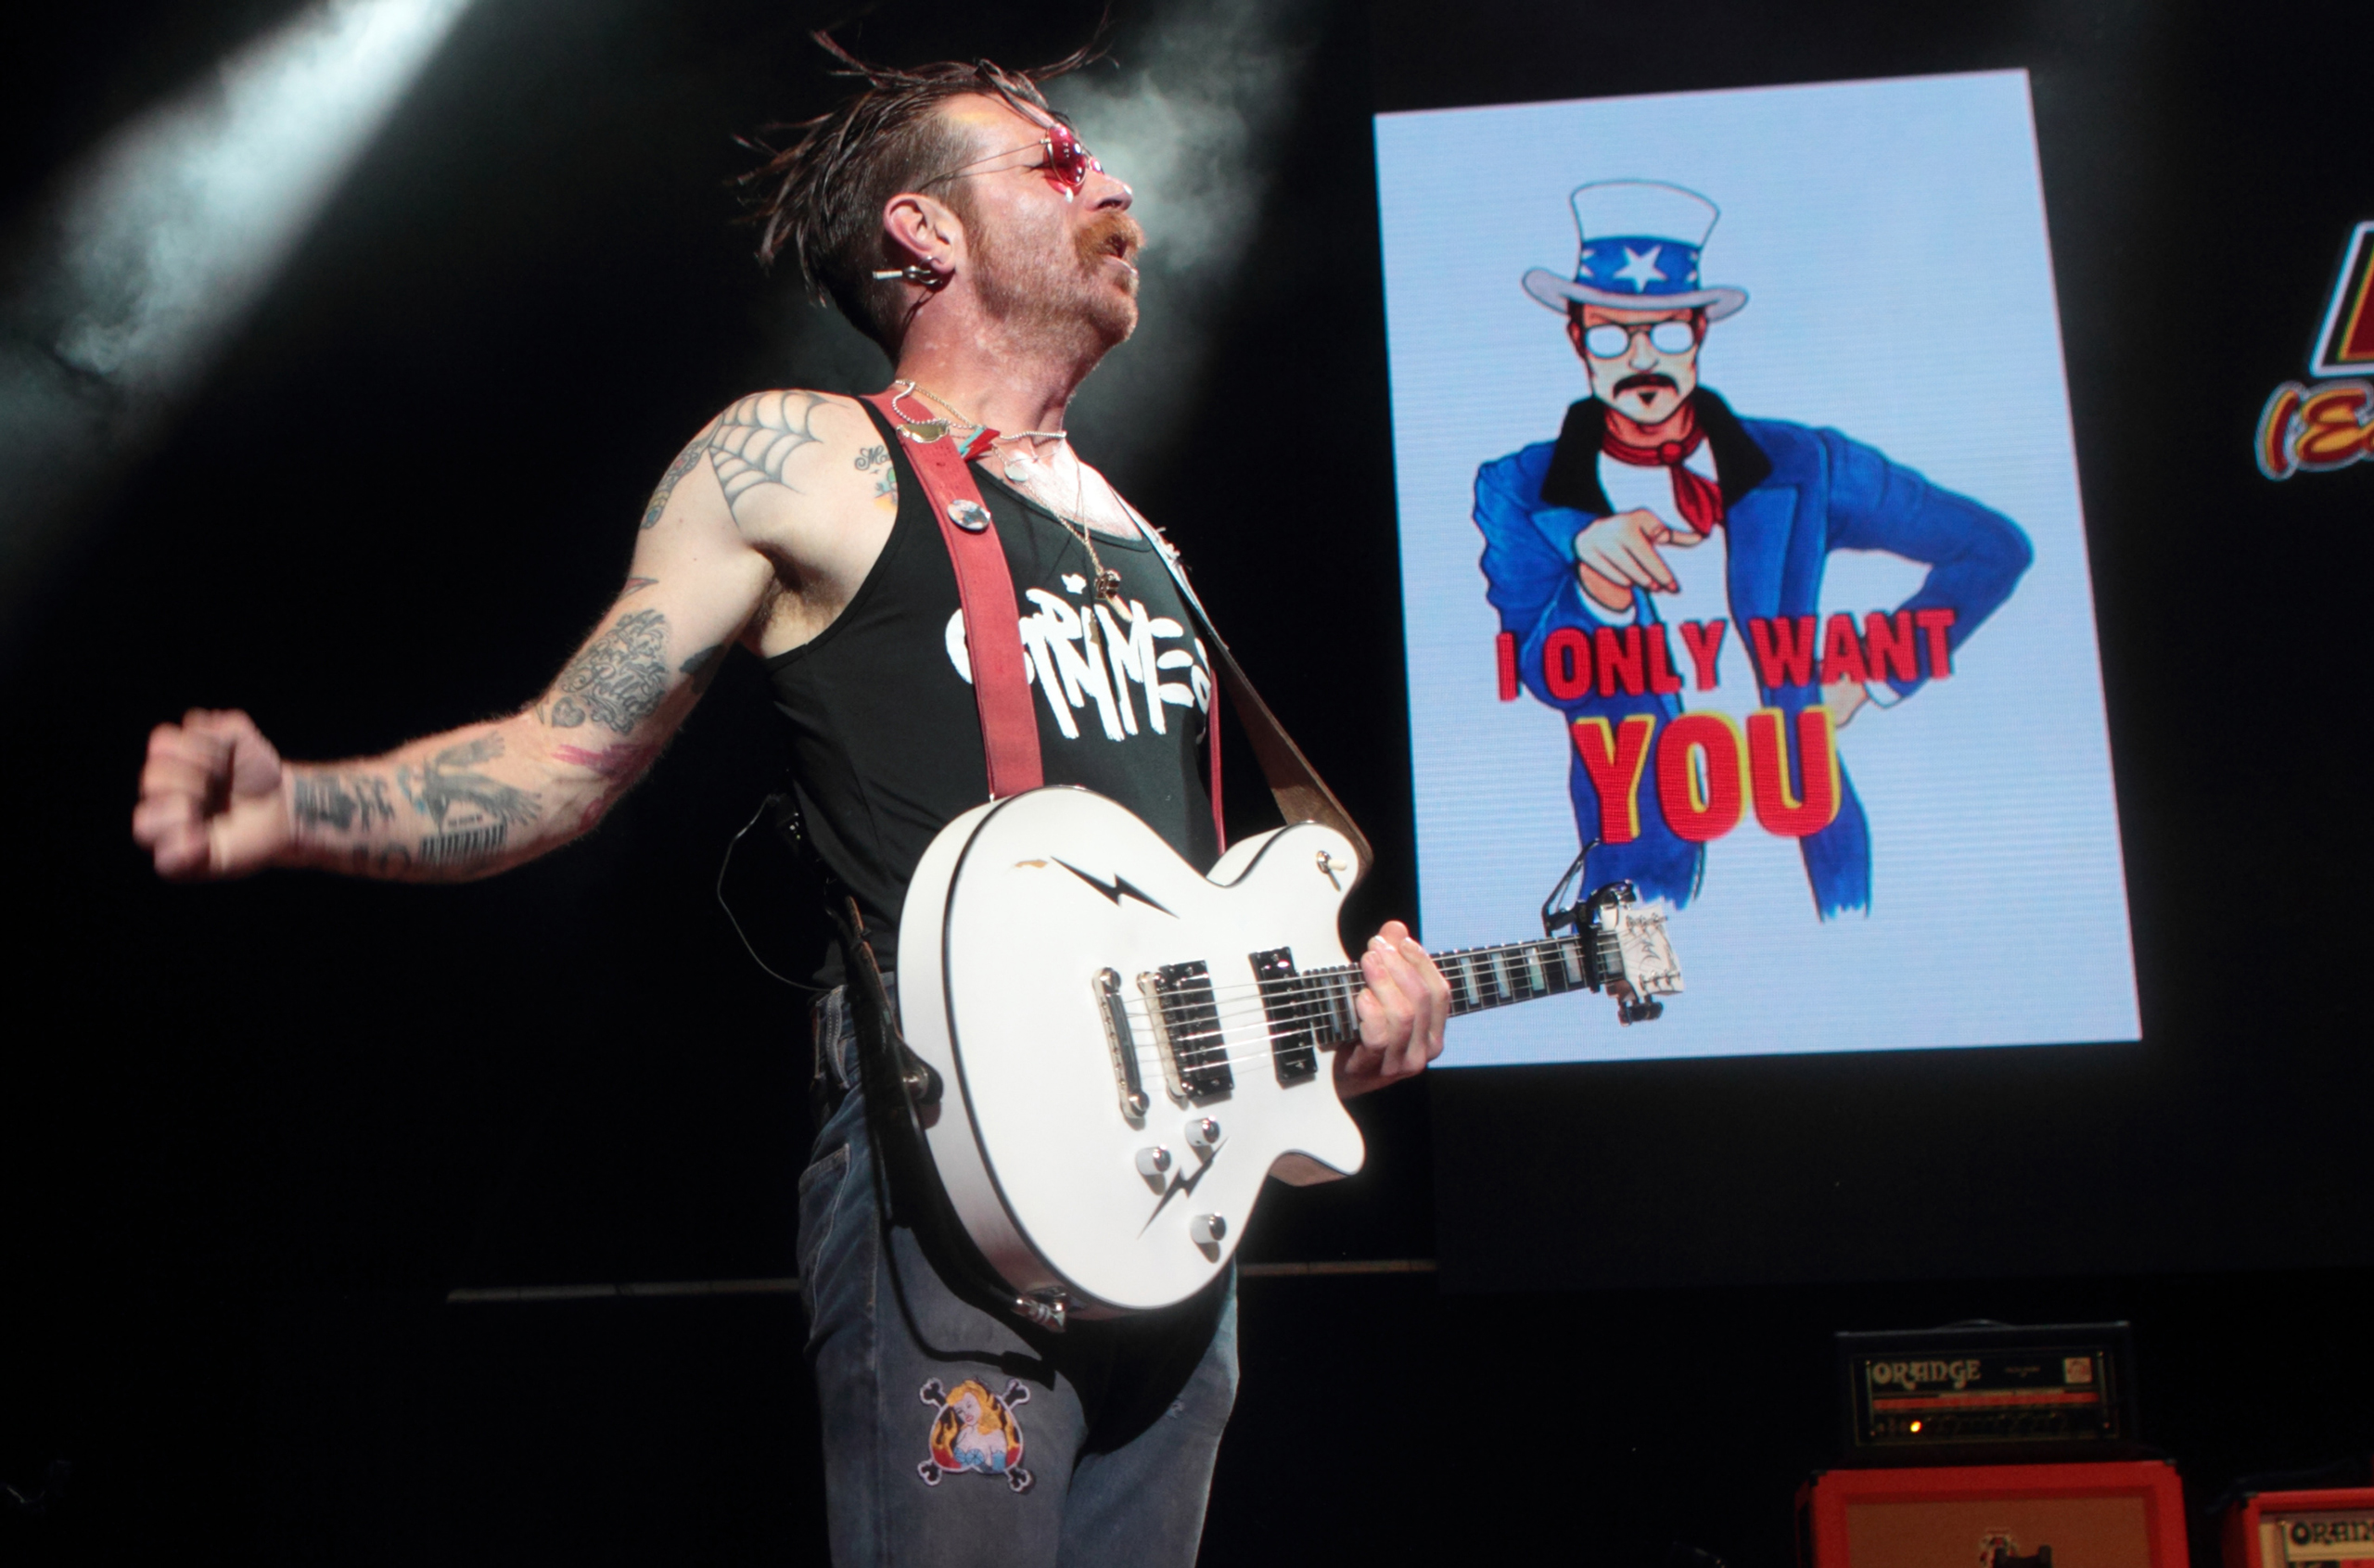 Jesse Hughes of Eagles of Death Metal performs during the Sweetlife Festival at Merriweather Post Pavilion in Columbia, Md., on May 14, 2016.